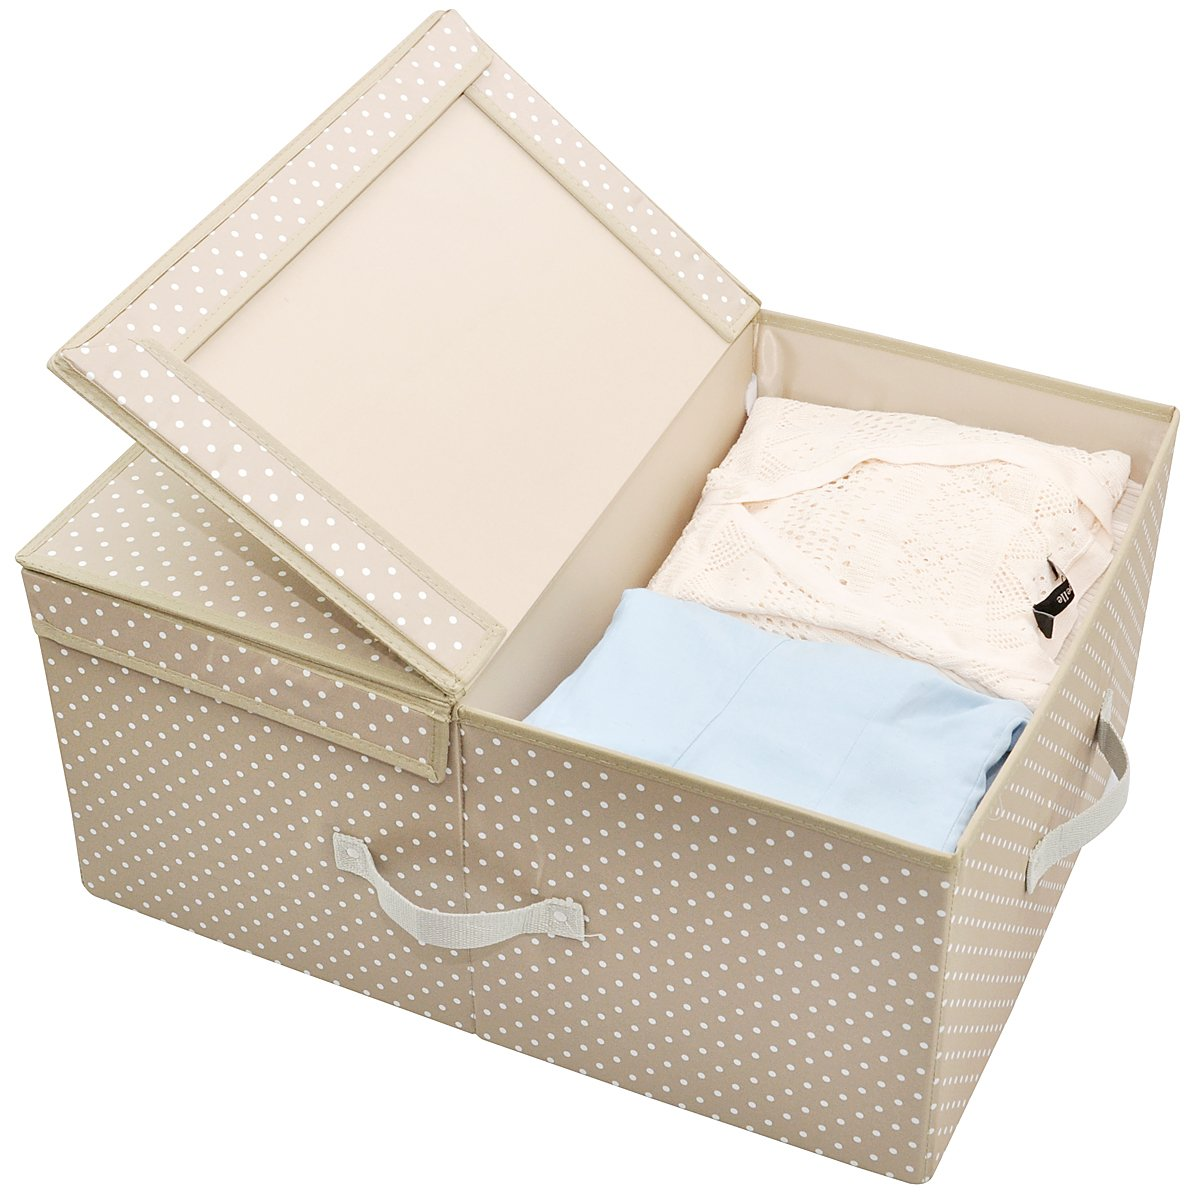 iwill CREATE PRO Folding Ultra-Size Clothes Storage Containers with Lid and Dual Compartments, (21.7x16.5x10.2 Inches), Apricot Dot FBA_B010HW6H84